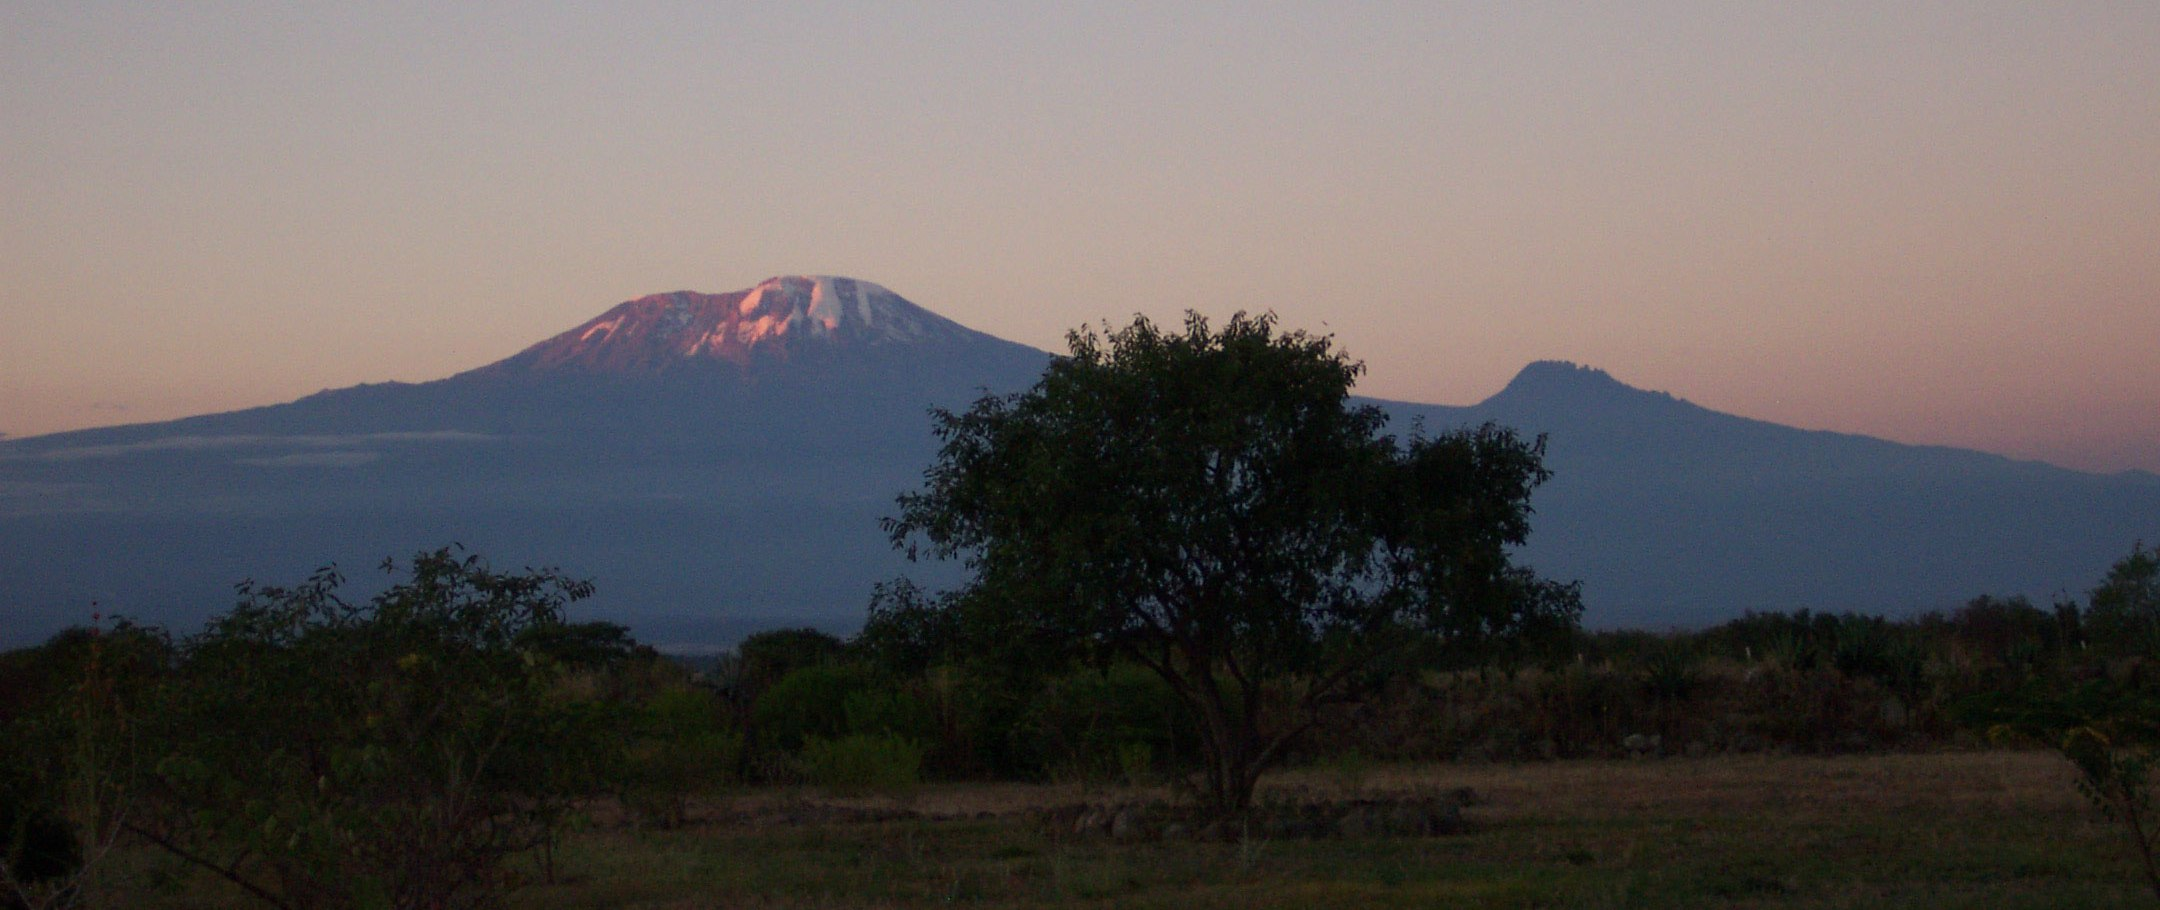 One of many beautiful Kilimanjaro sunsets.